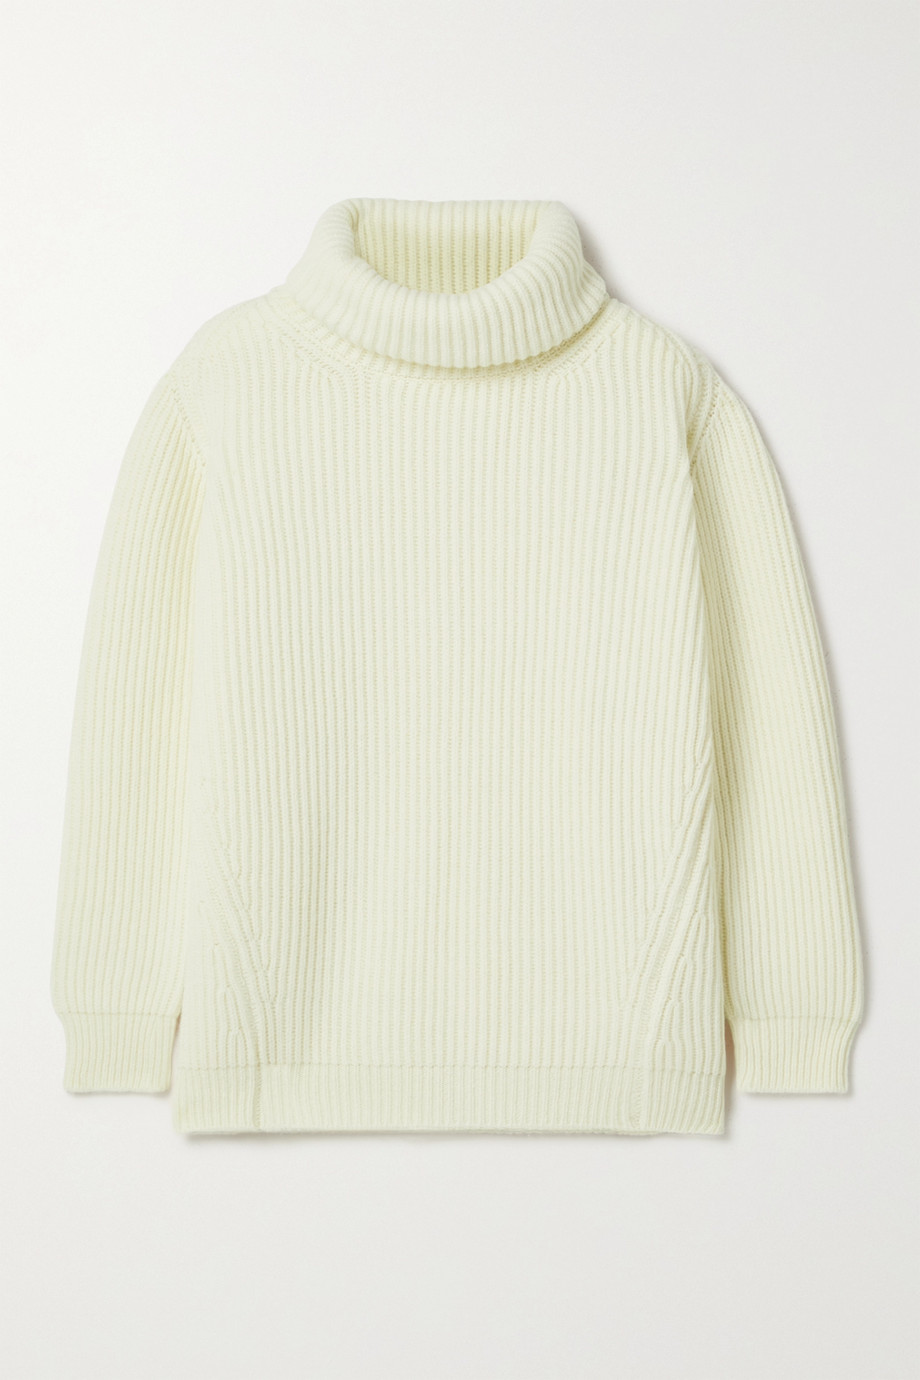 &DAUGHTER + NET SUSTAIN Inver ribbed merino wool-blend turtleneck sweater